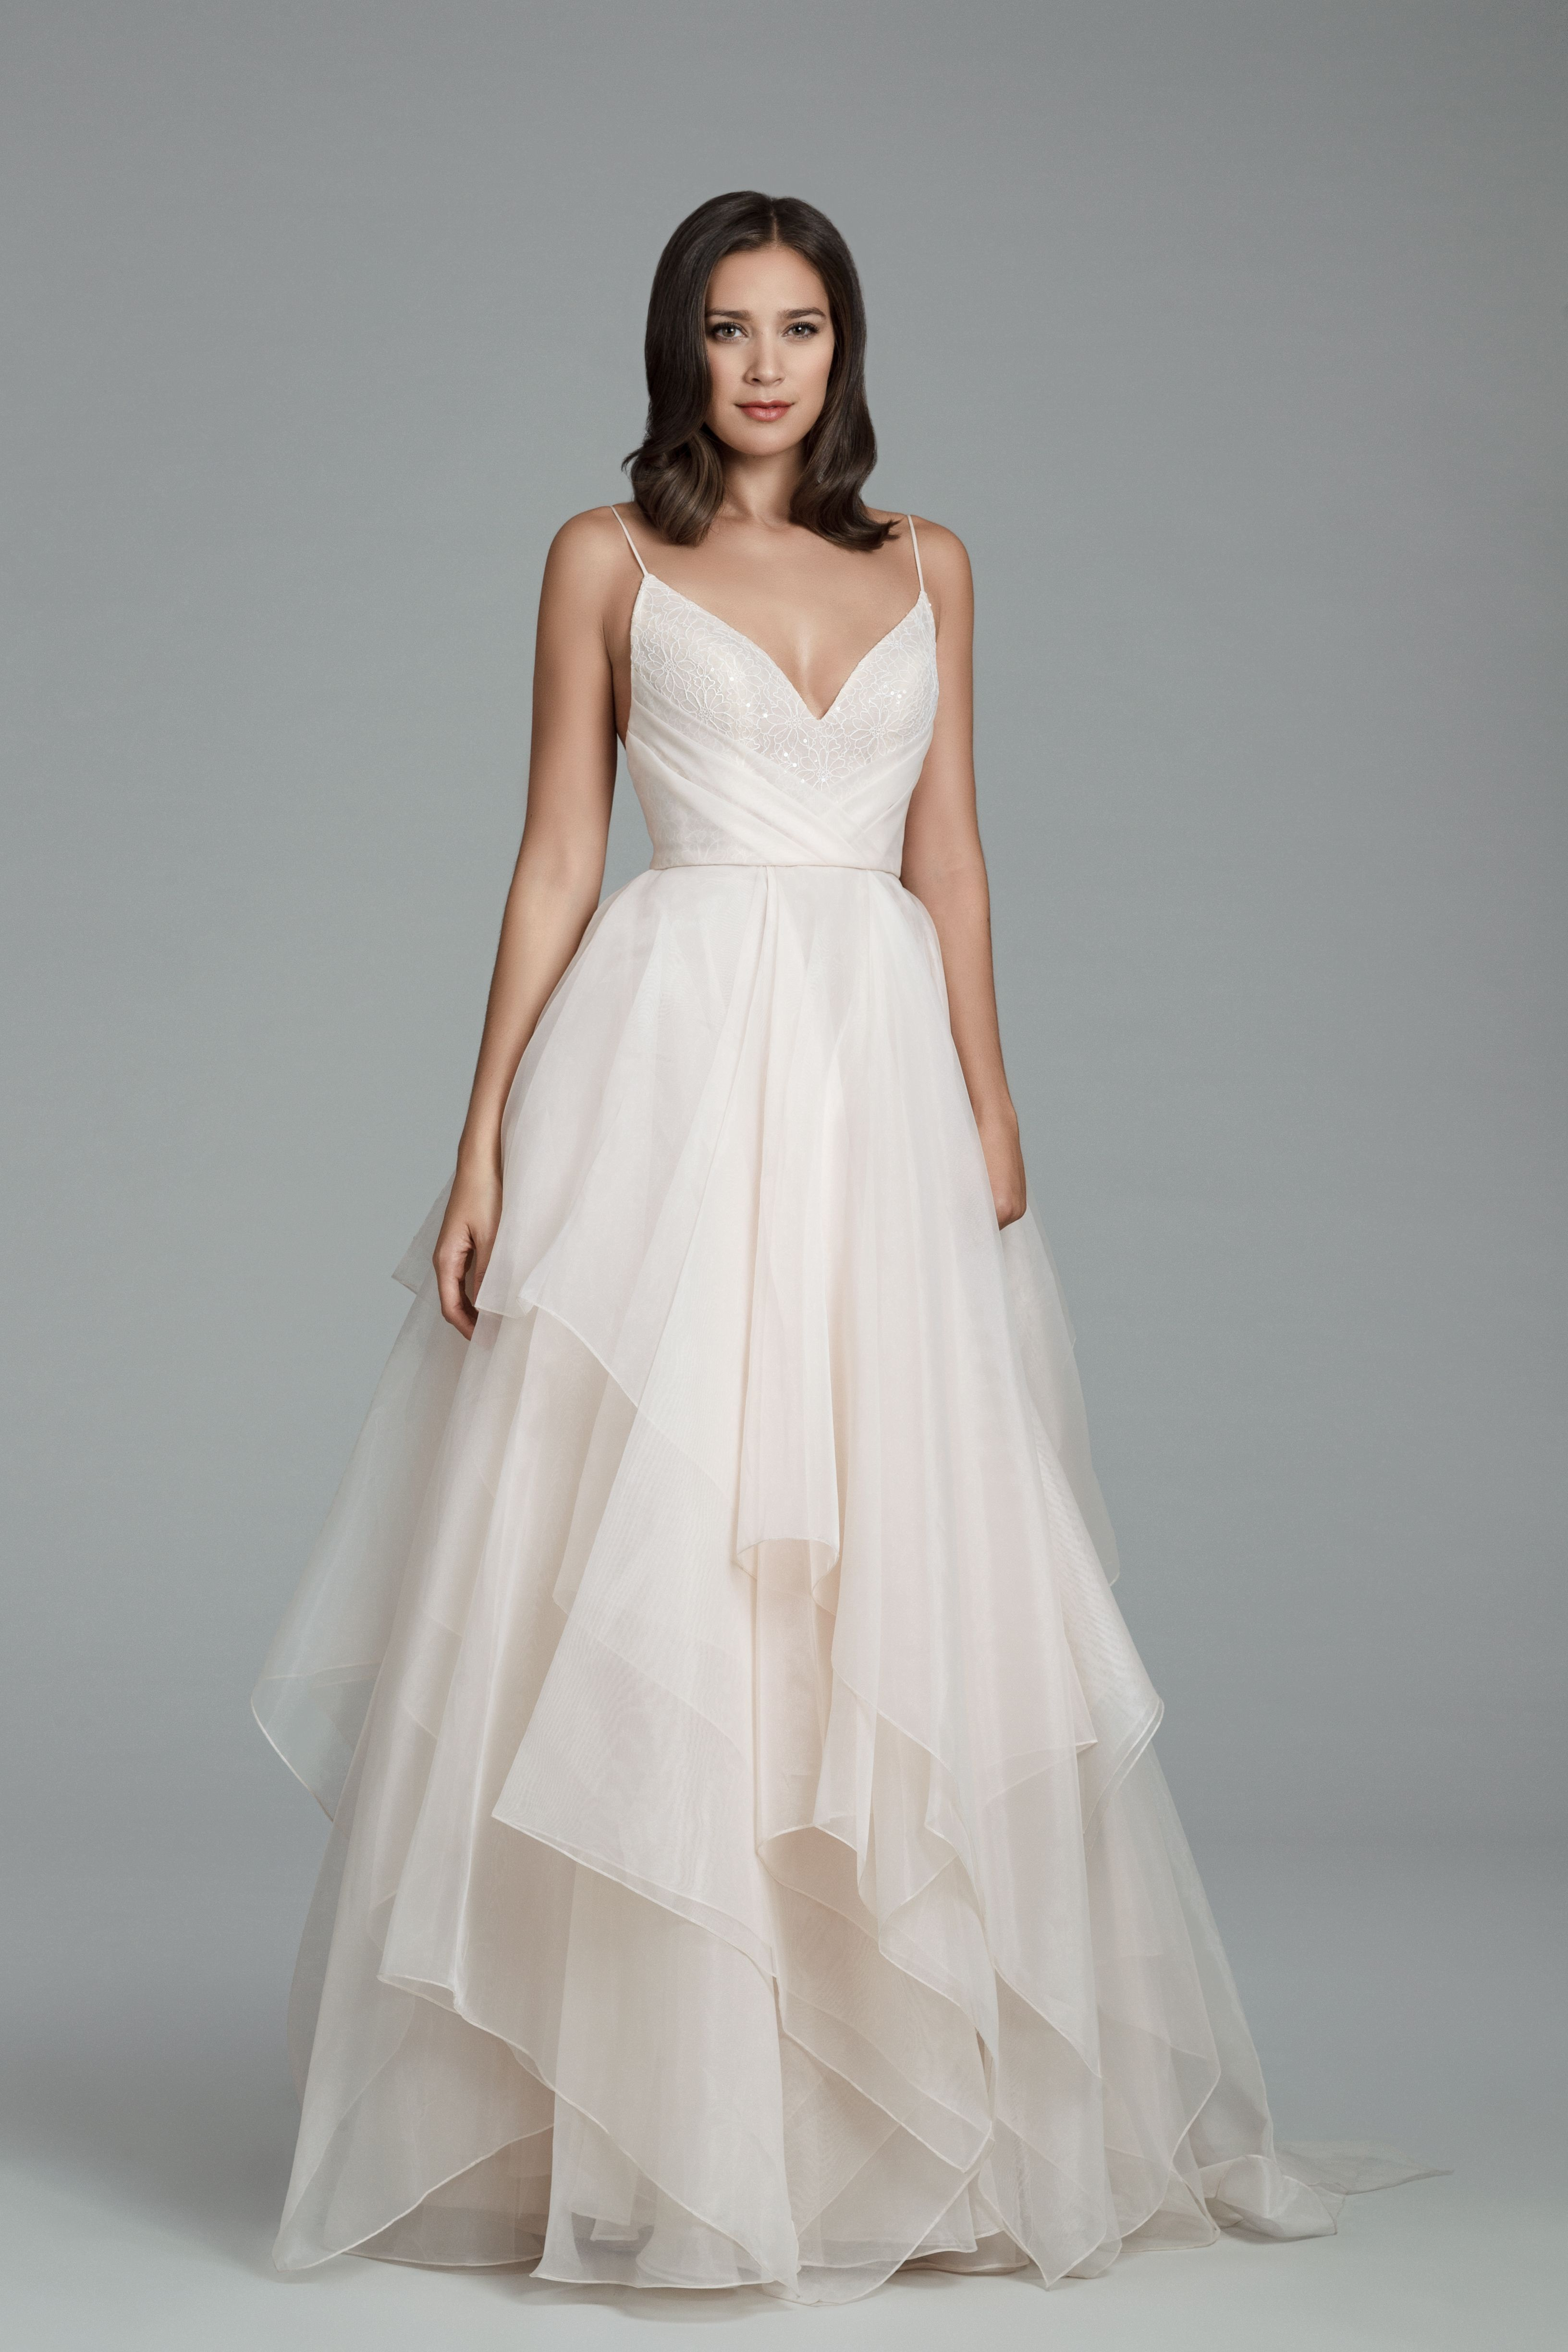 03822573f22c Tara Keely Bridal Gown Style 2805 - Designed by Lazaro.Rose Organza ball  gown, ballerina V neckline with spaghetti straps, sequined lace bodice with  ...